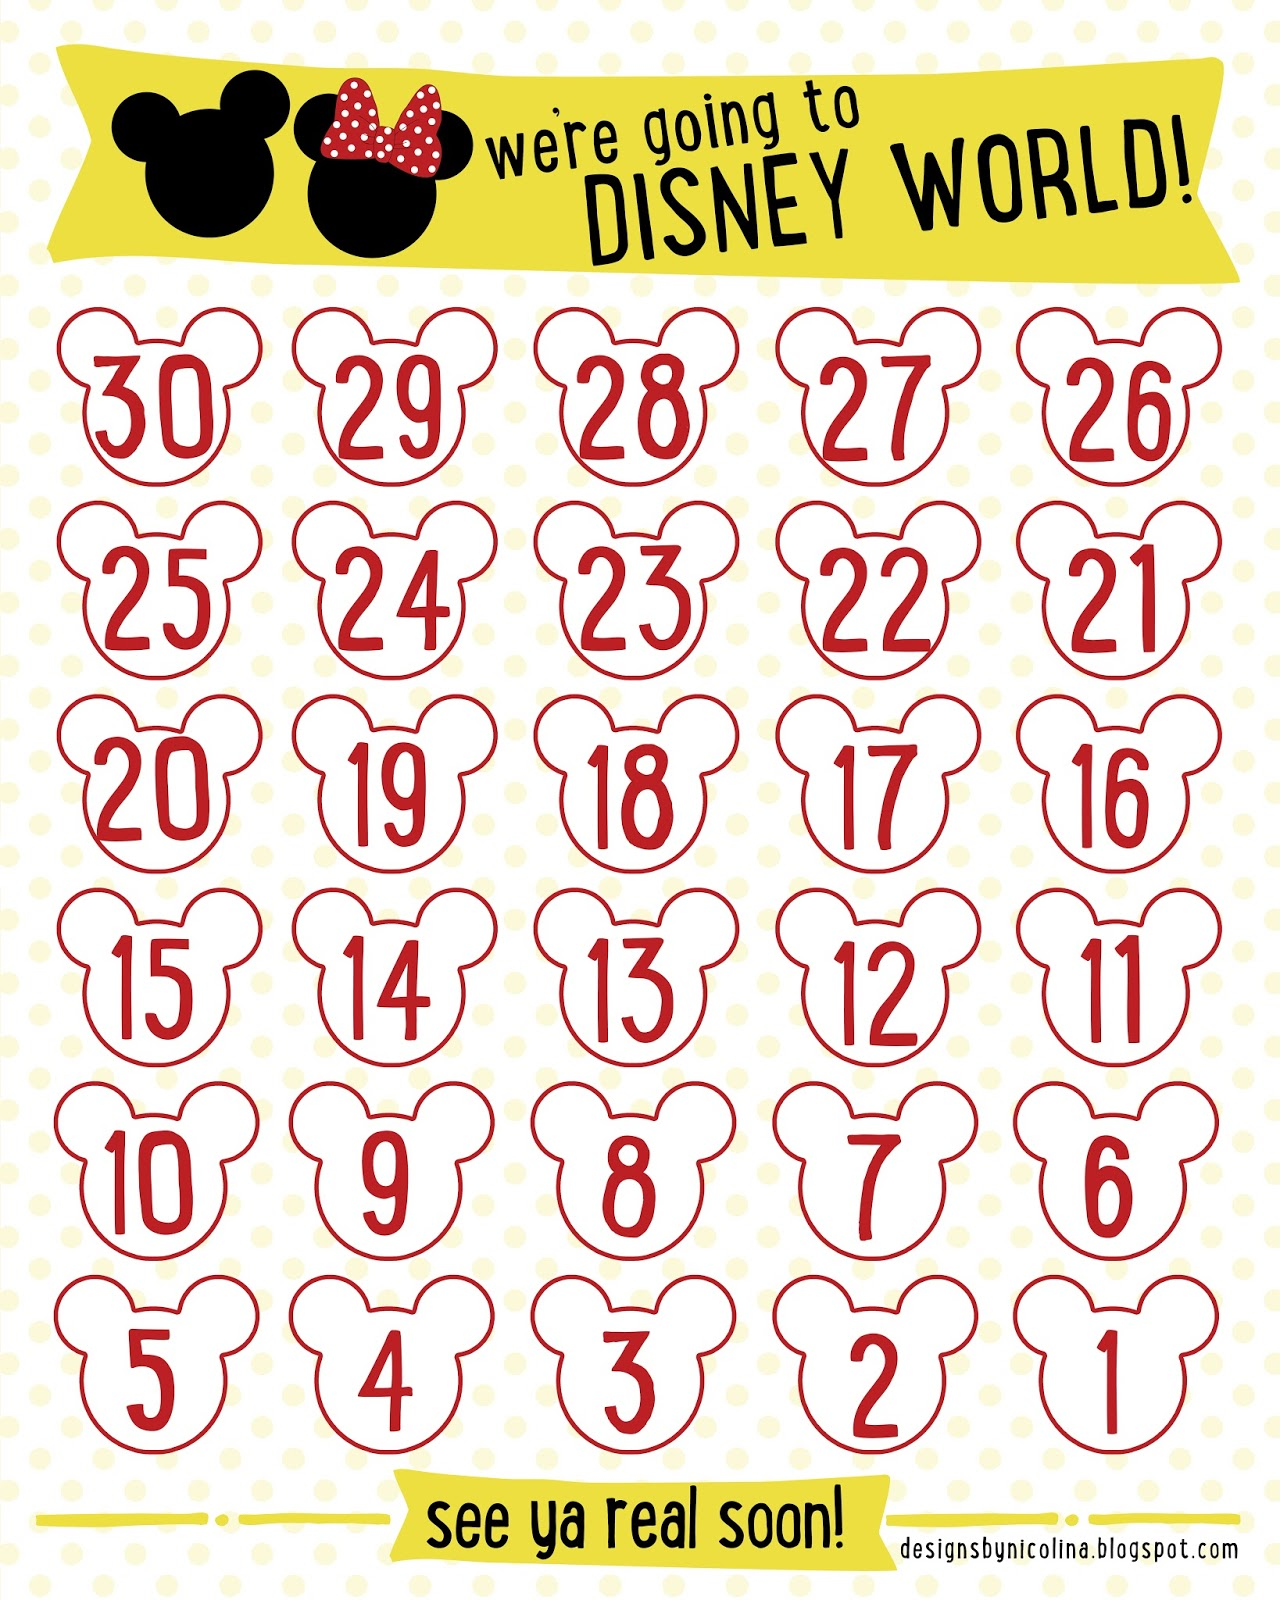 designs by nicolina: DISNEY COUNTDOWN! /// FREE PRINTABLE ///